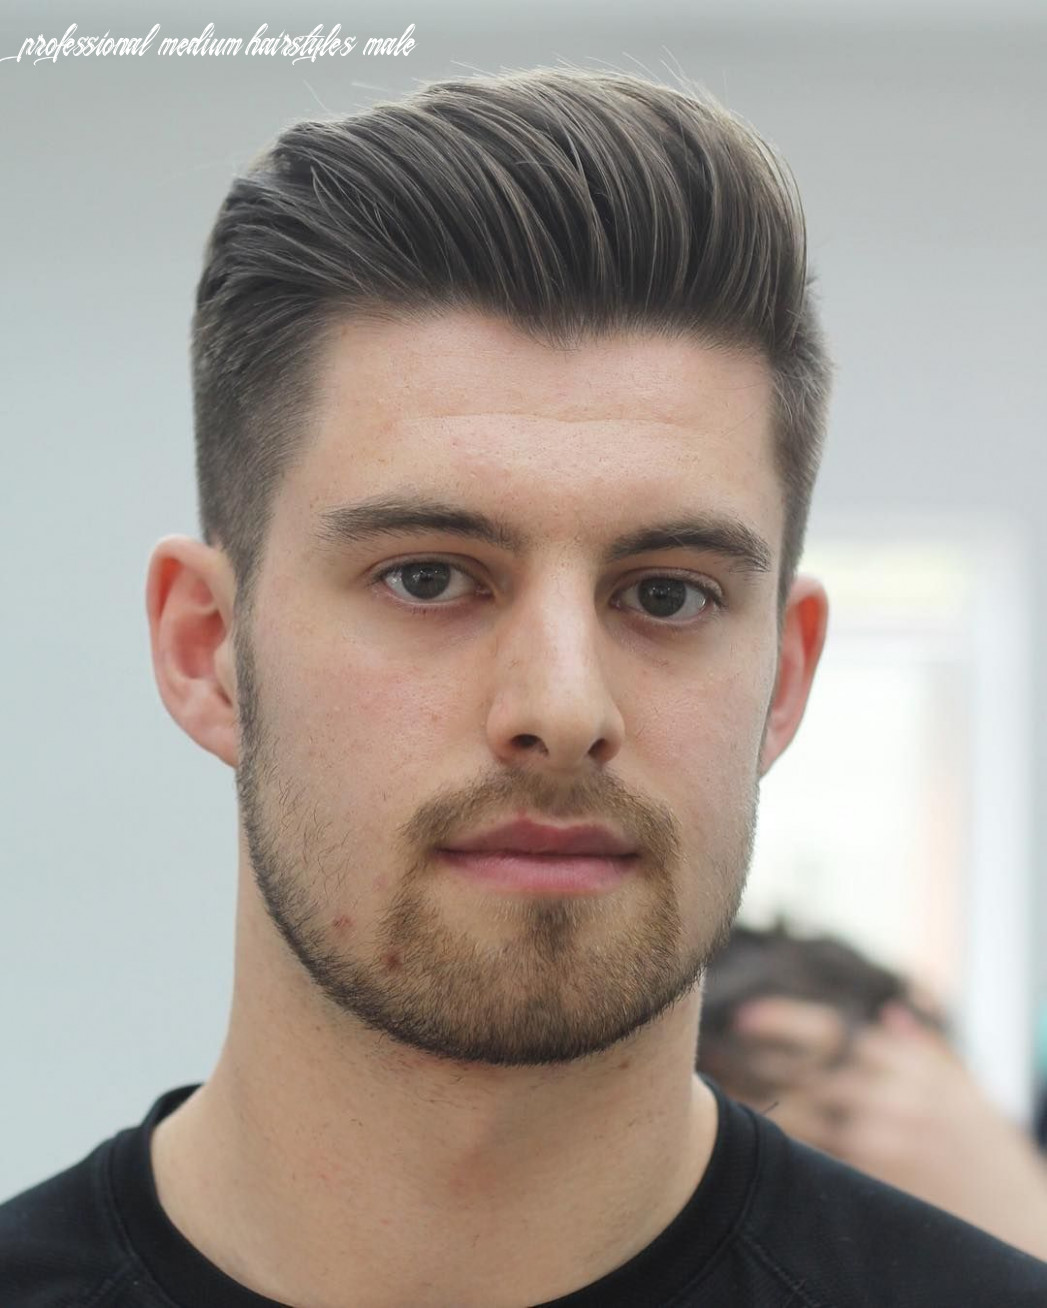 Cool 12 classic professional hairstyles for men do your best